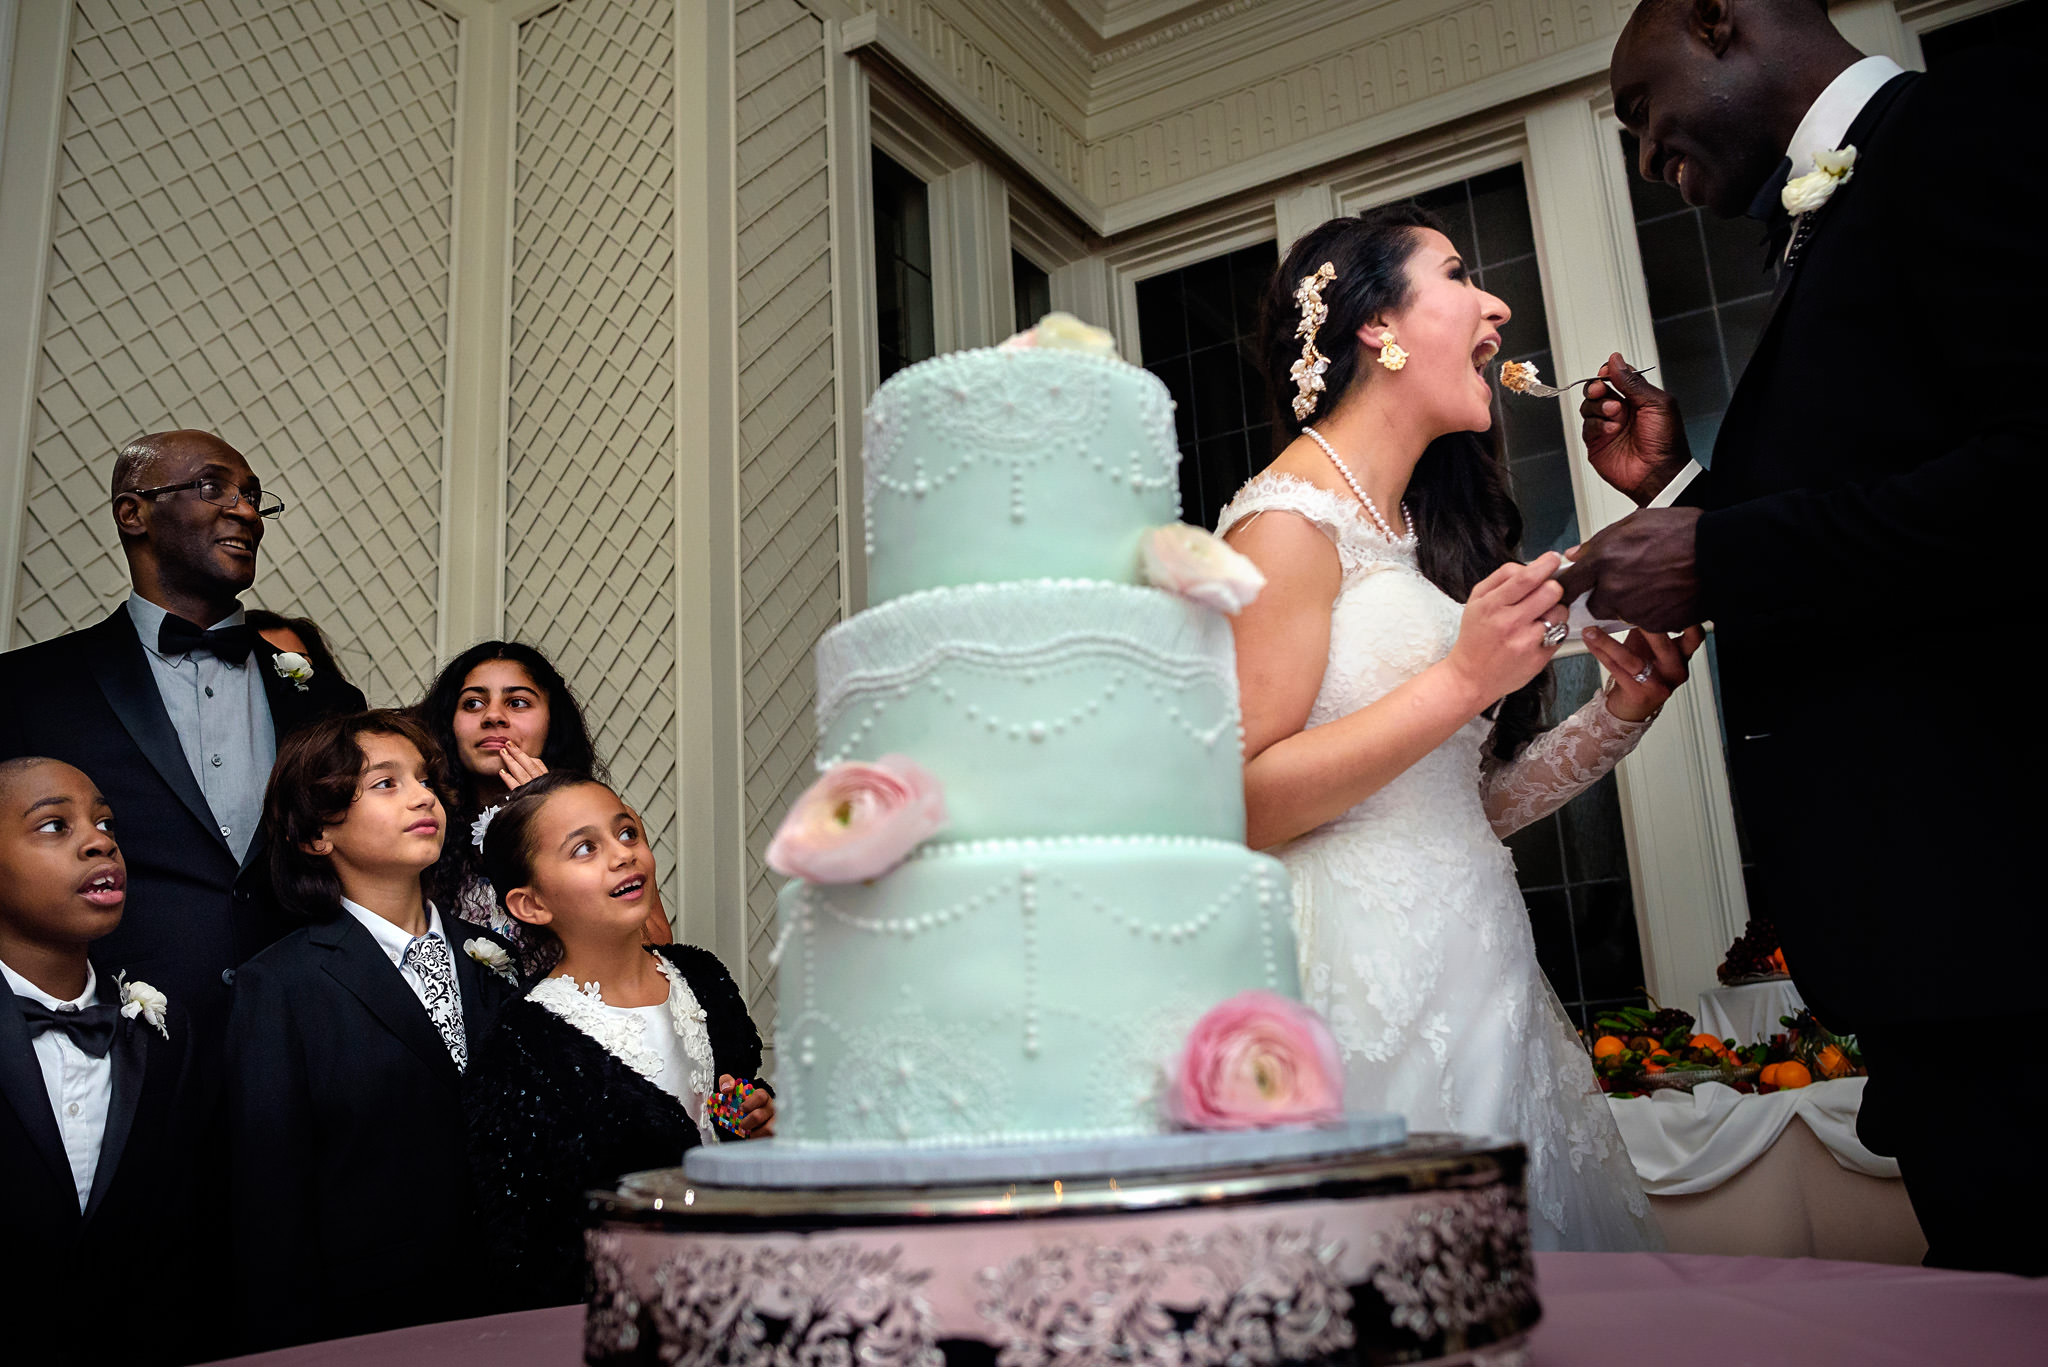 Bridegroom feeds bride wedding cake